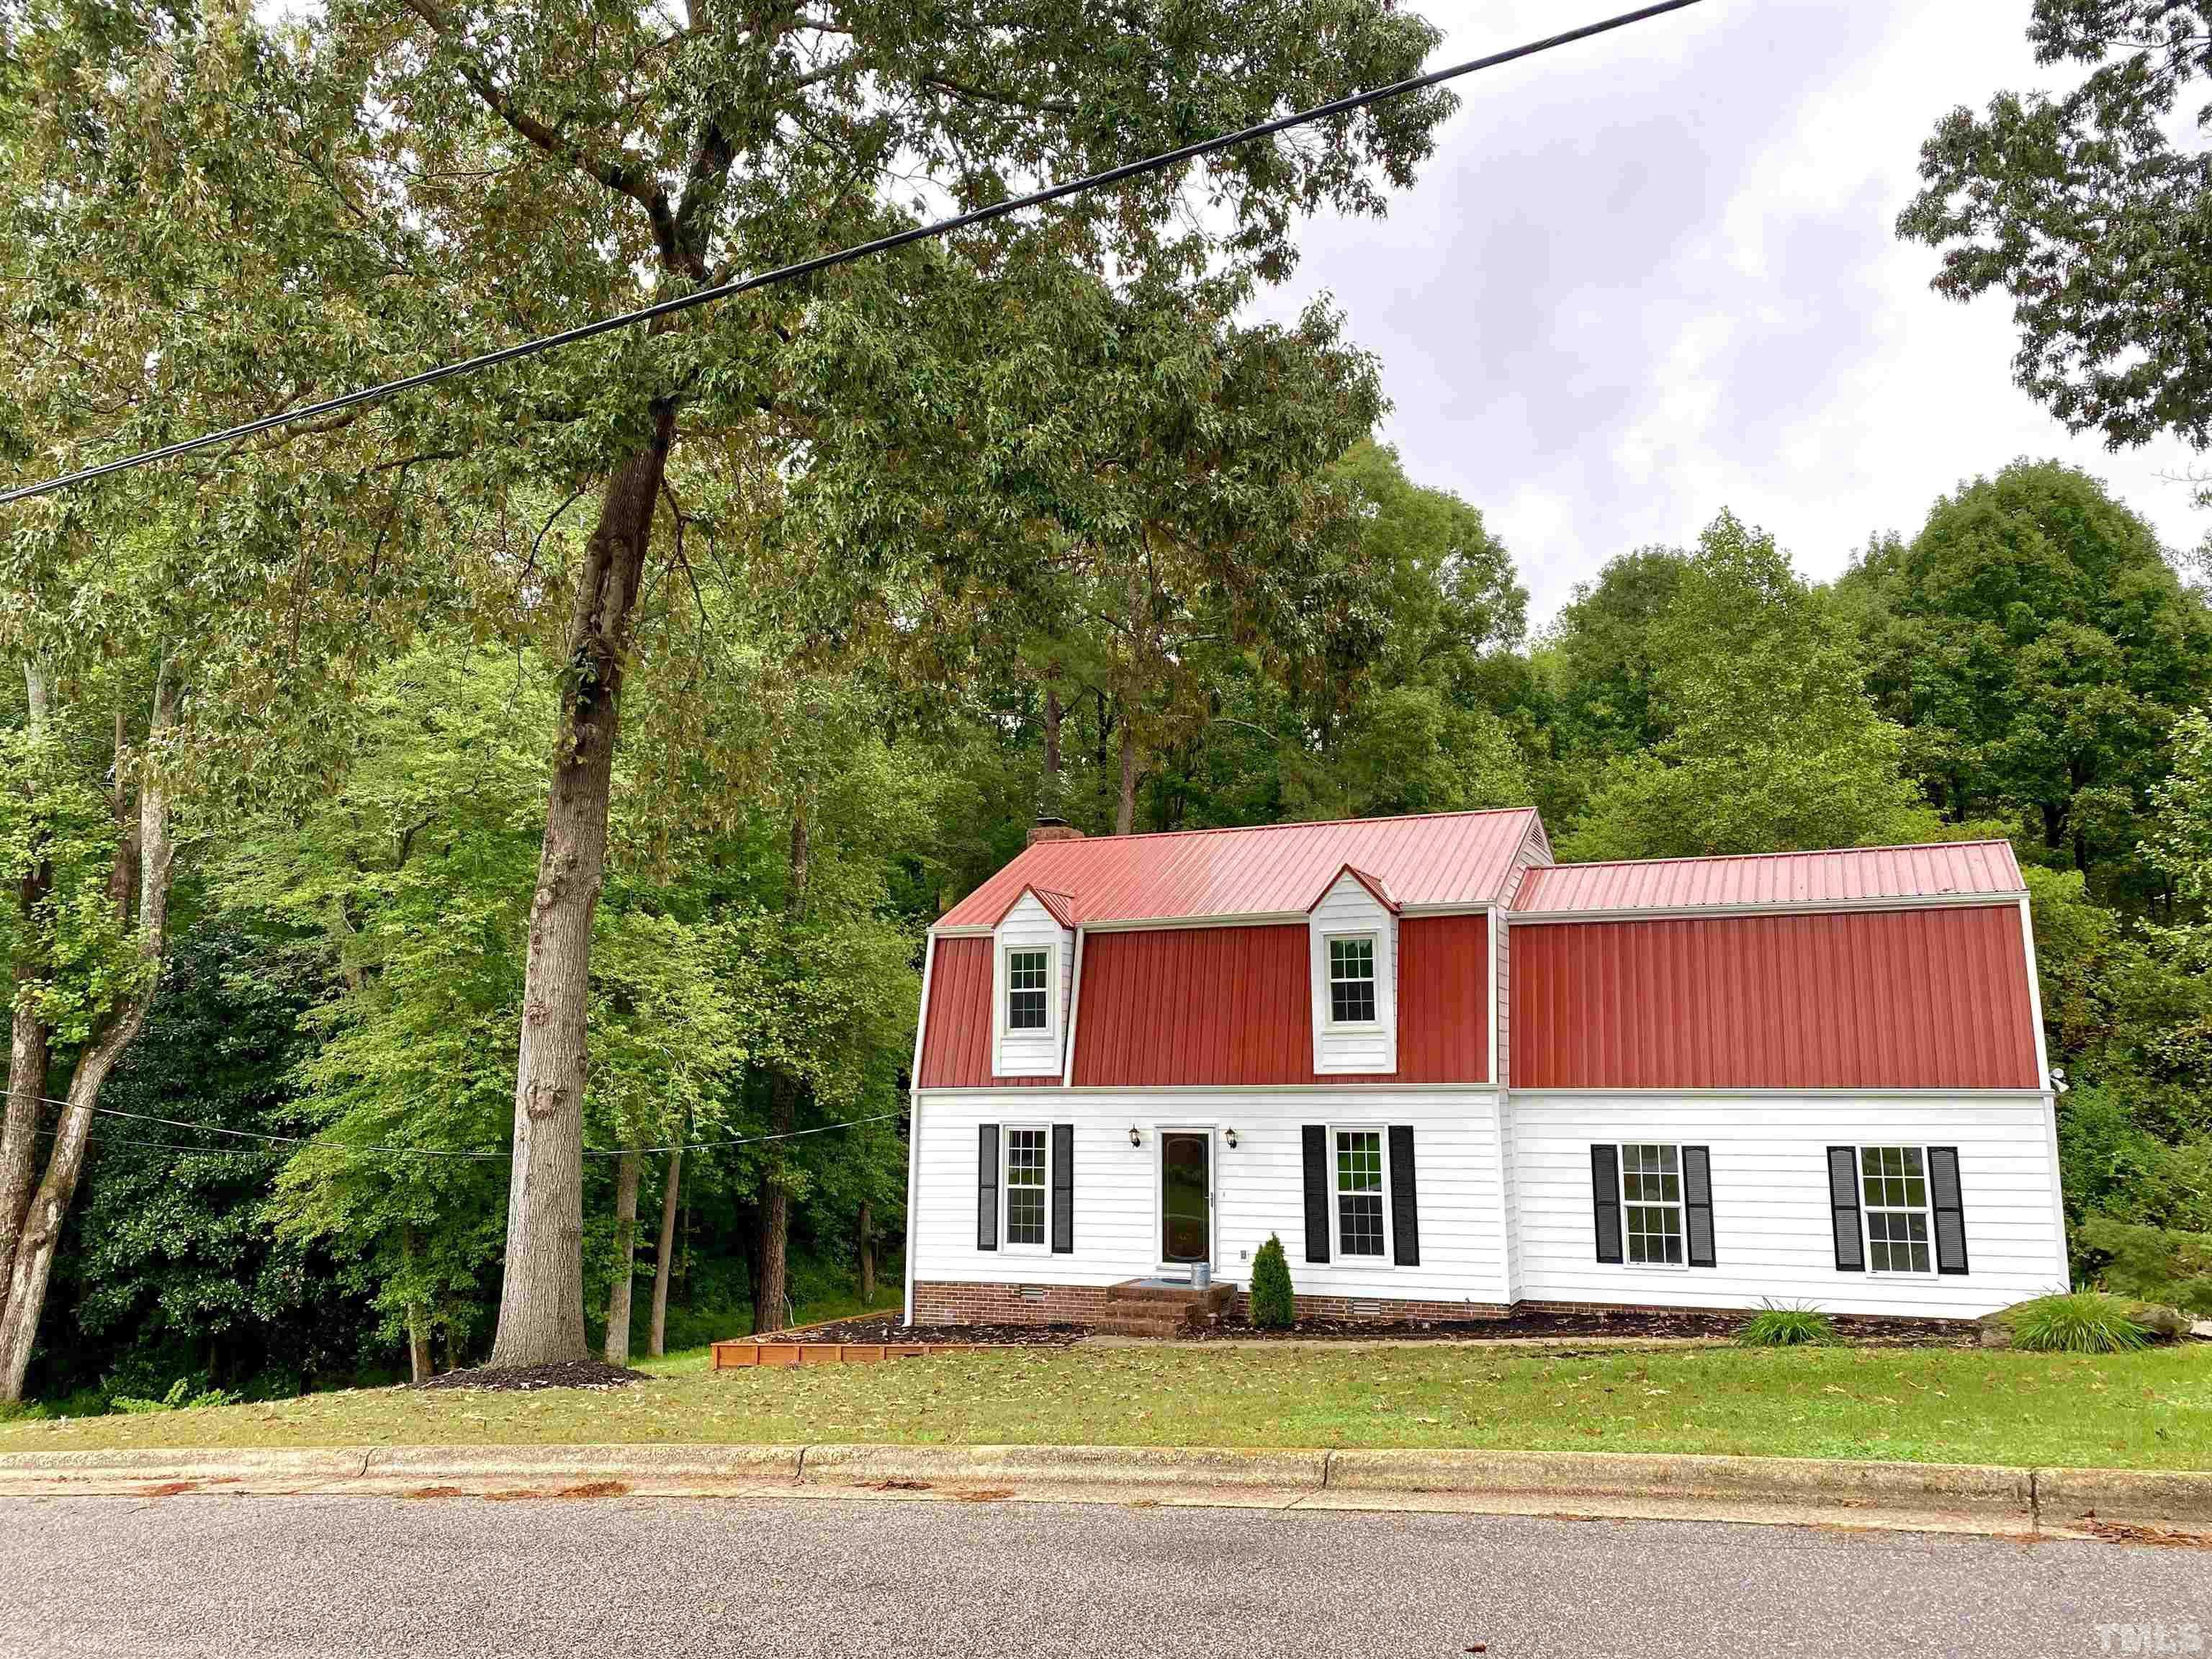 $340,000 - 5Br/3Ba -  for Sale in Not In A Subdivision, Wendell